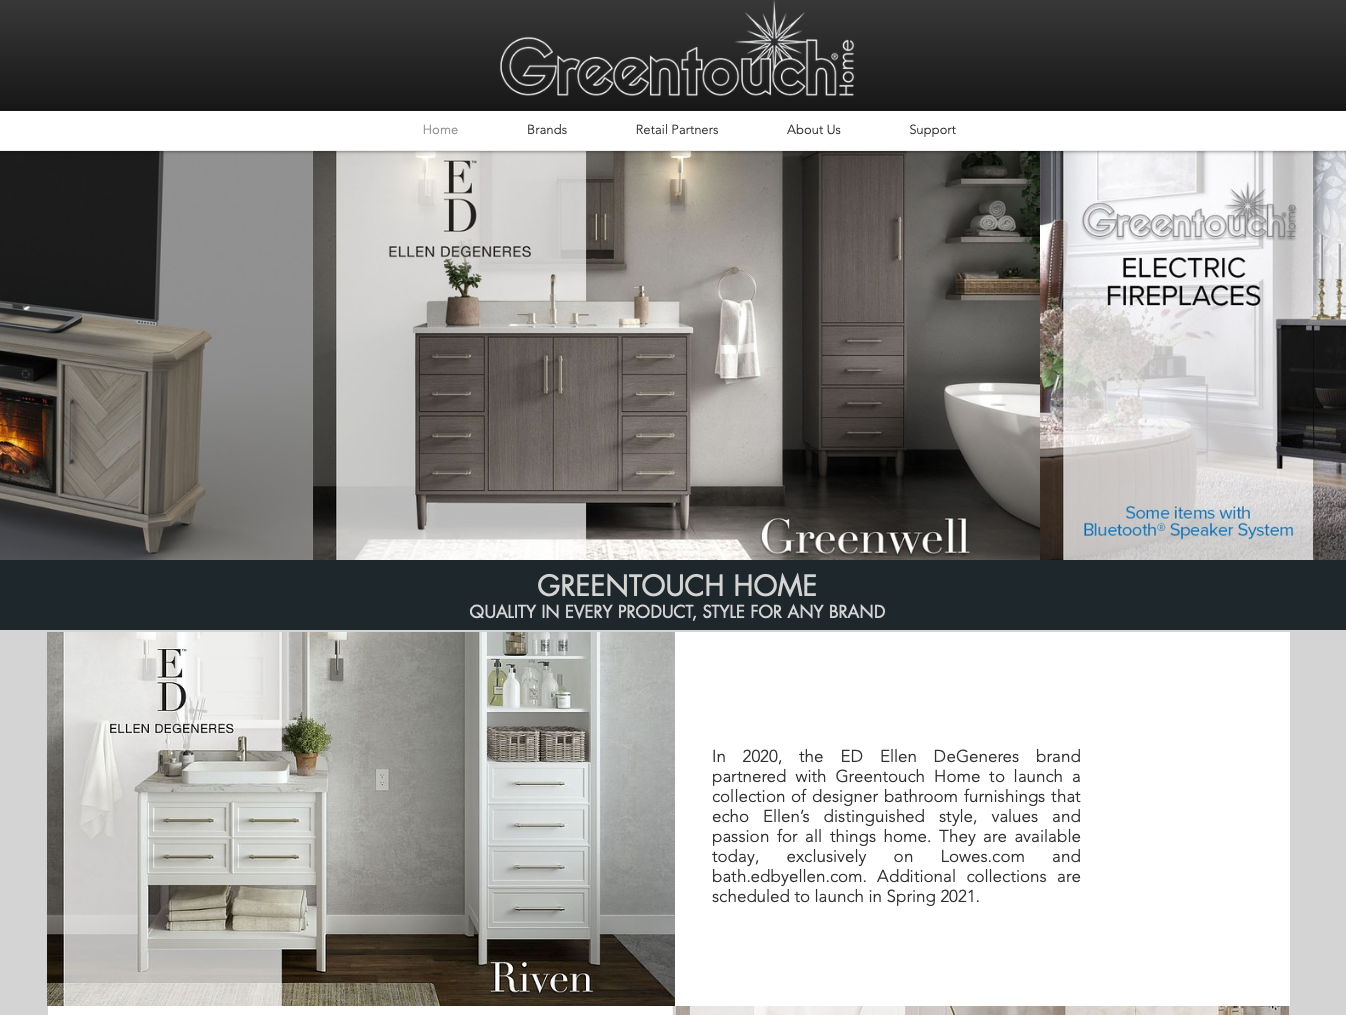 Greentouchhome.com website